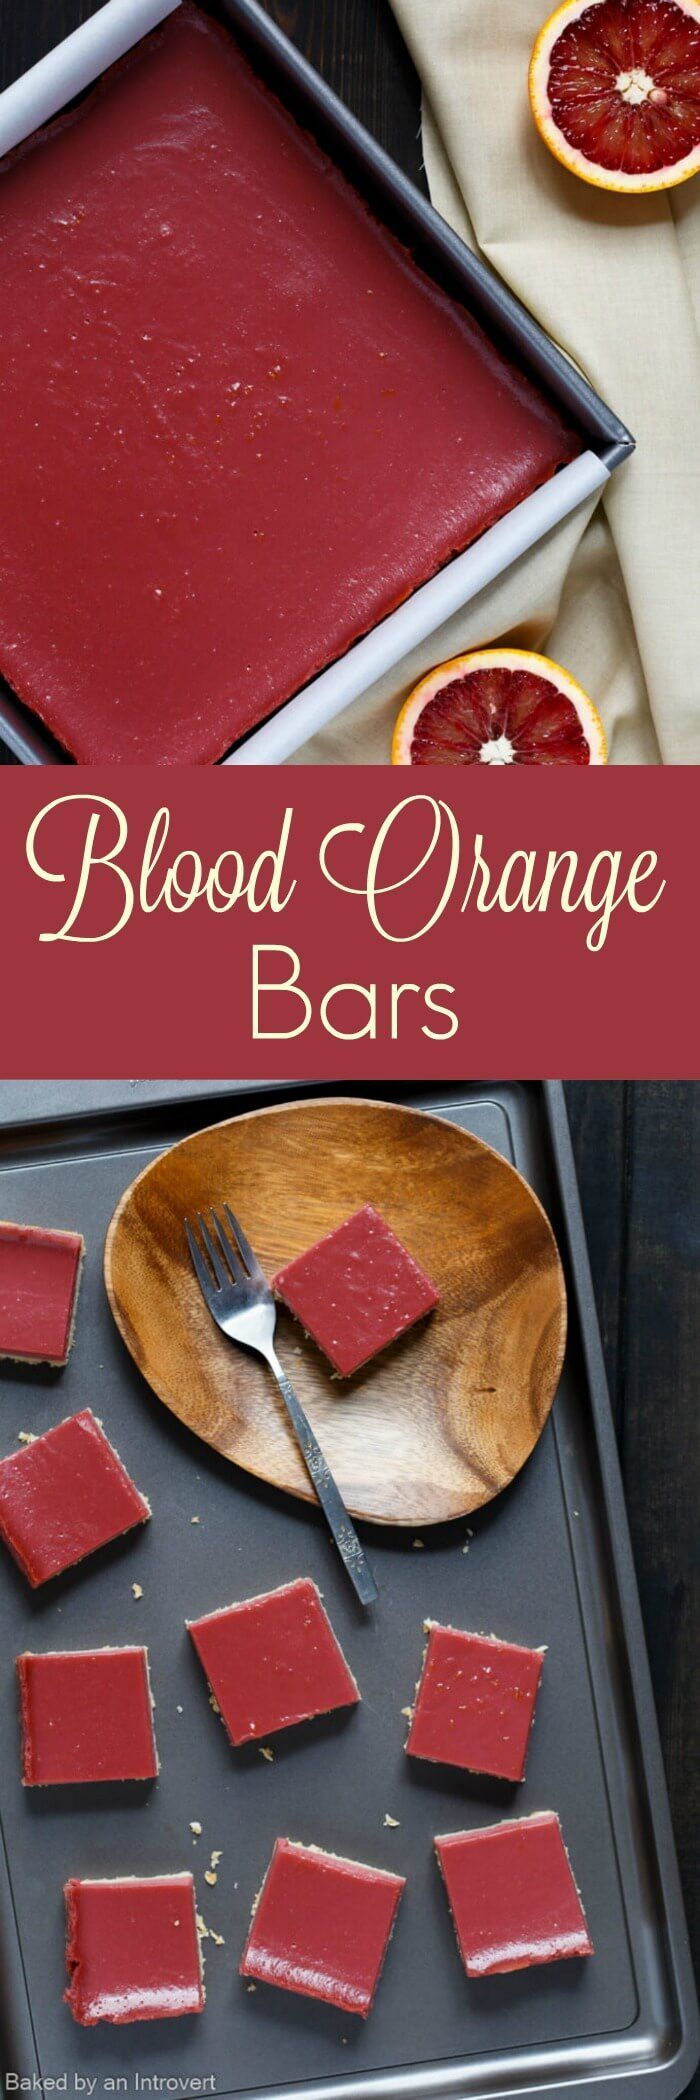 Blood Orange Bars are a less tangy version of lemon bars. They are vibrant, full of orange flavor, and rest on a buttery shortbread crust. This simple recipe will bring light to your cold winter days.